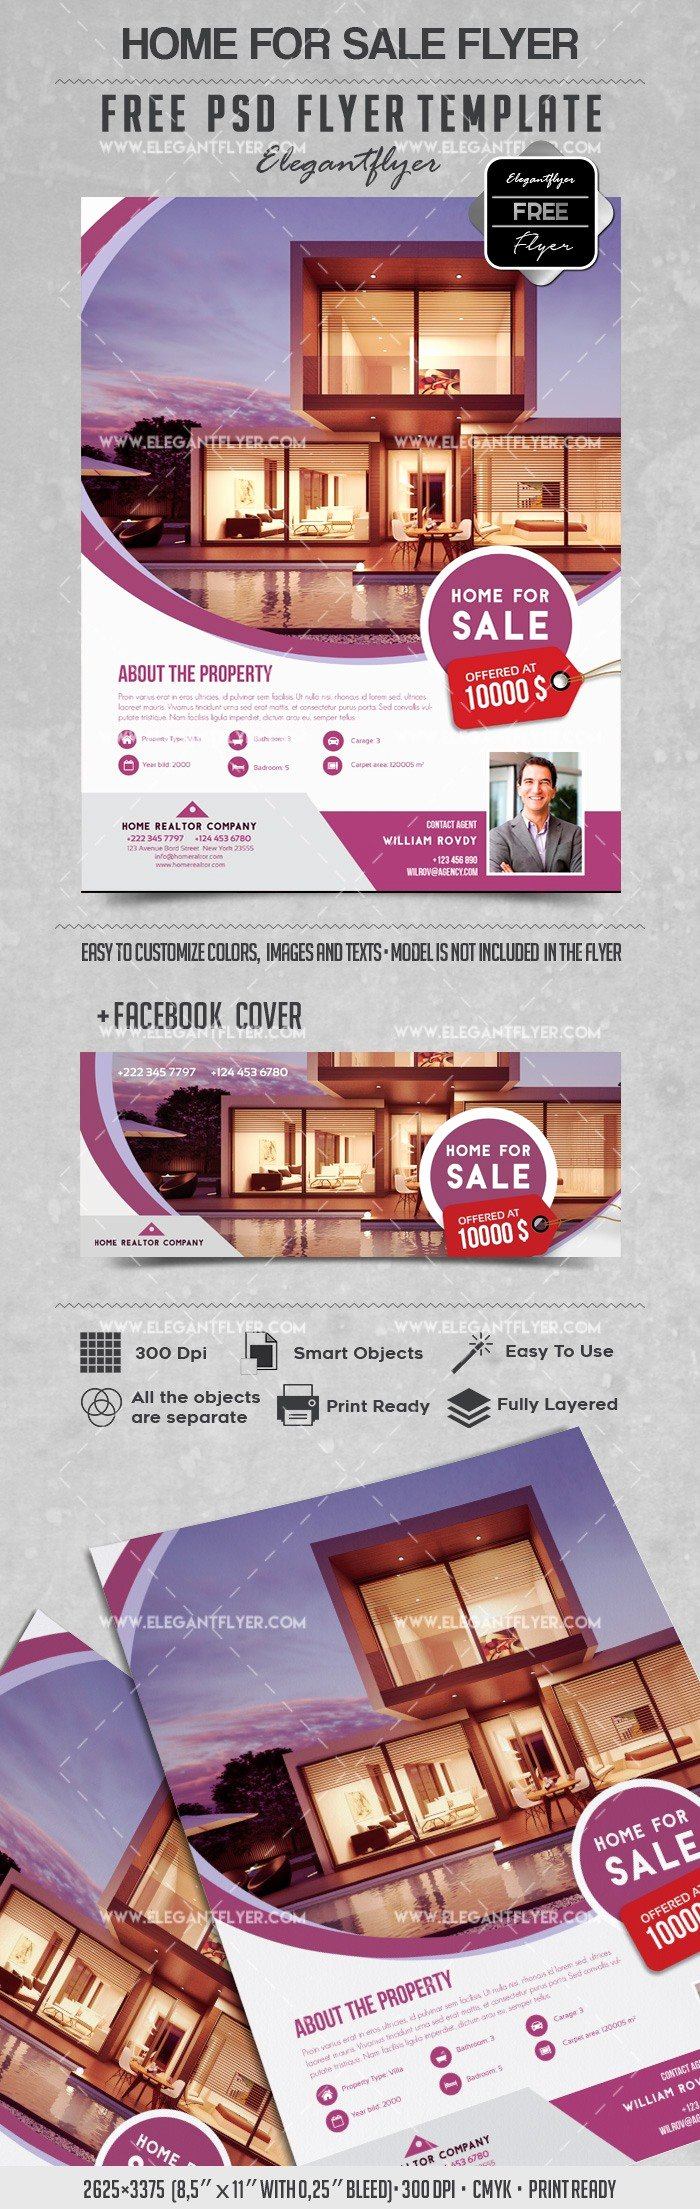 For Sale Flyer Template Awesome Home for Sale – Flyer Psd Template – by Elegantflyer